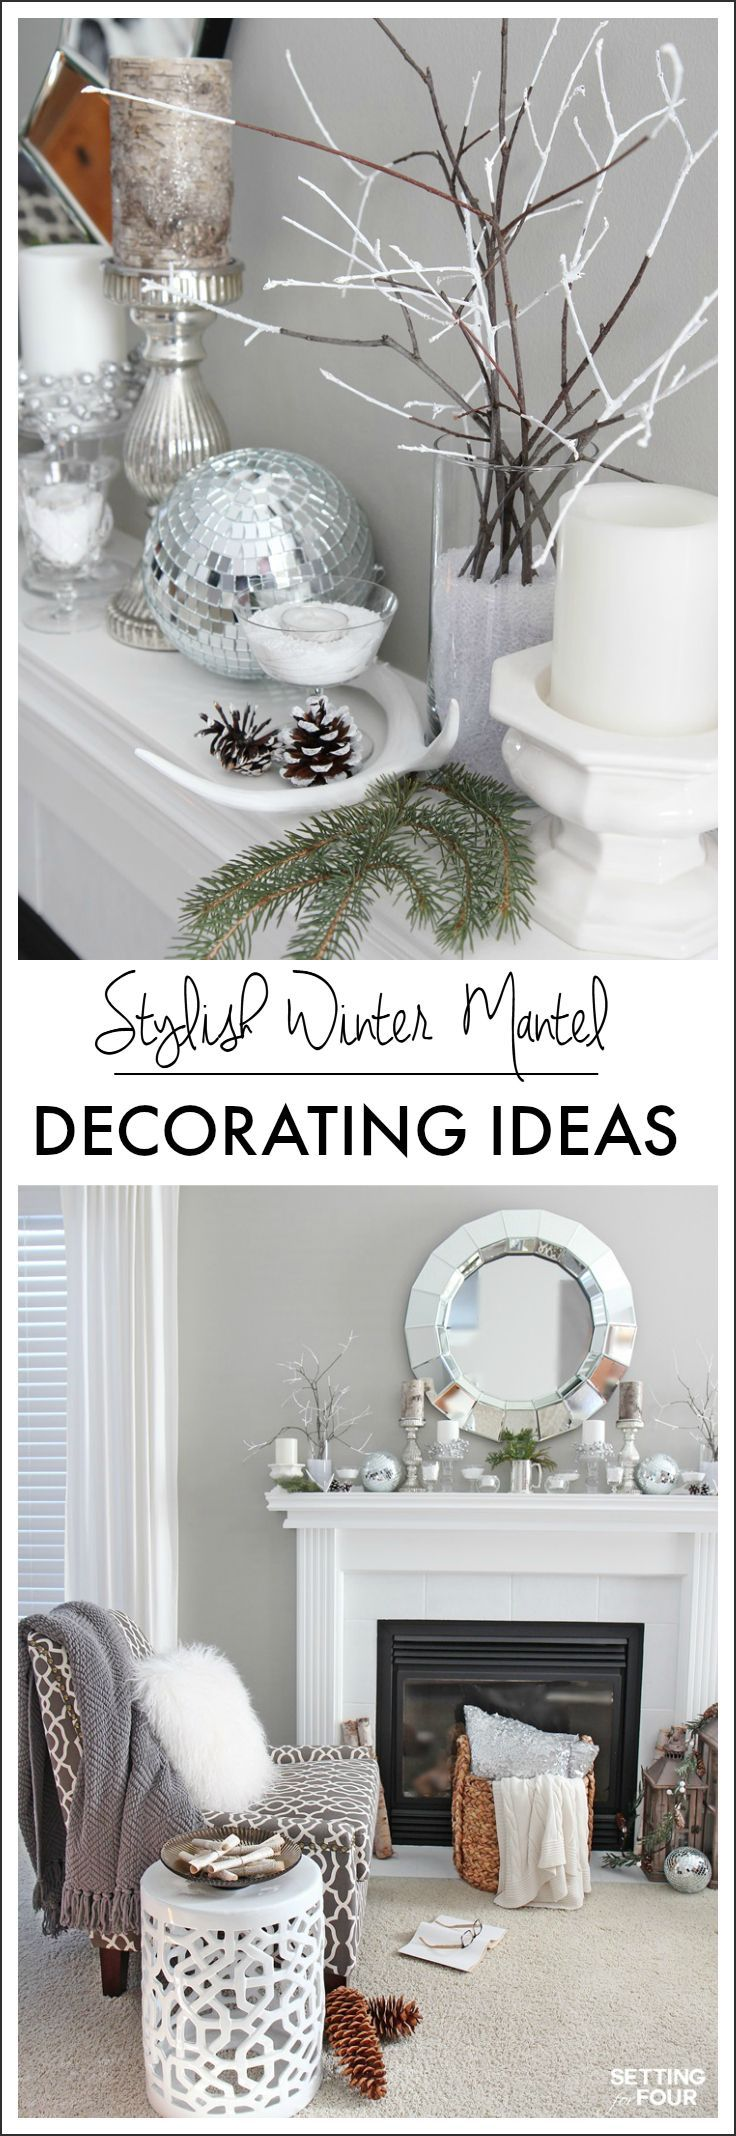 Winter Mantel Decorating Ideas - Setting for Four